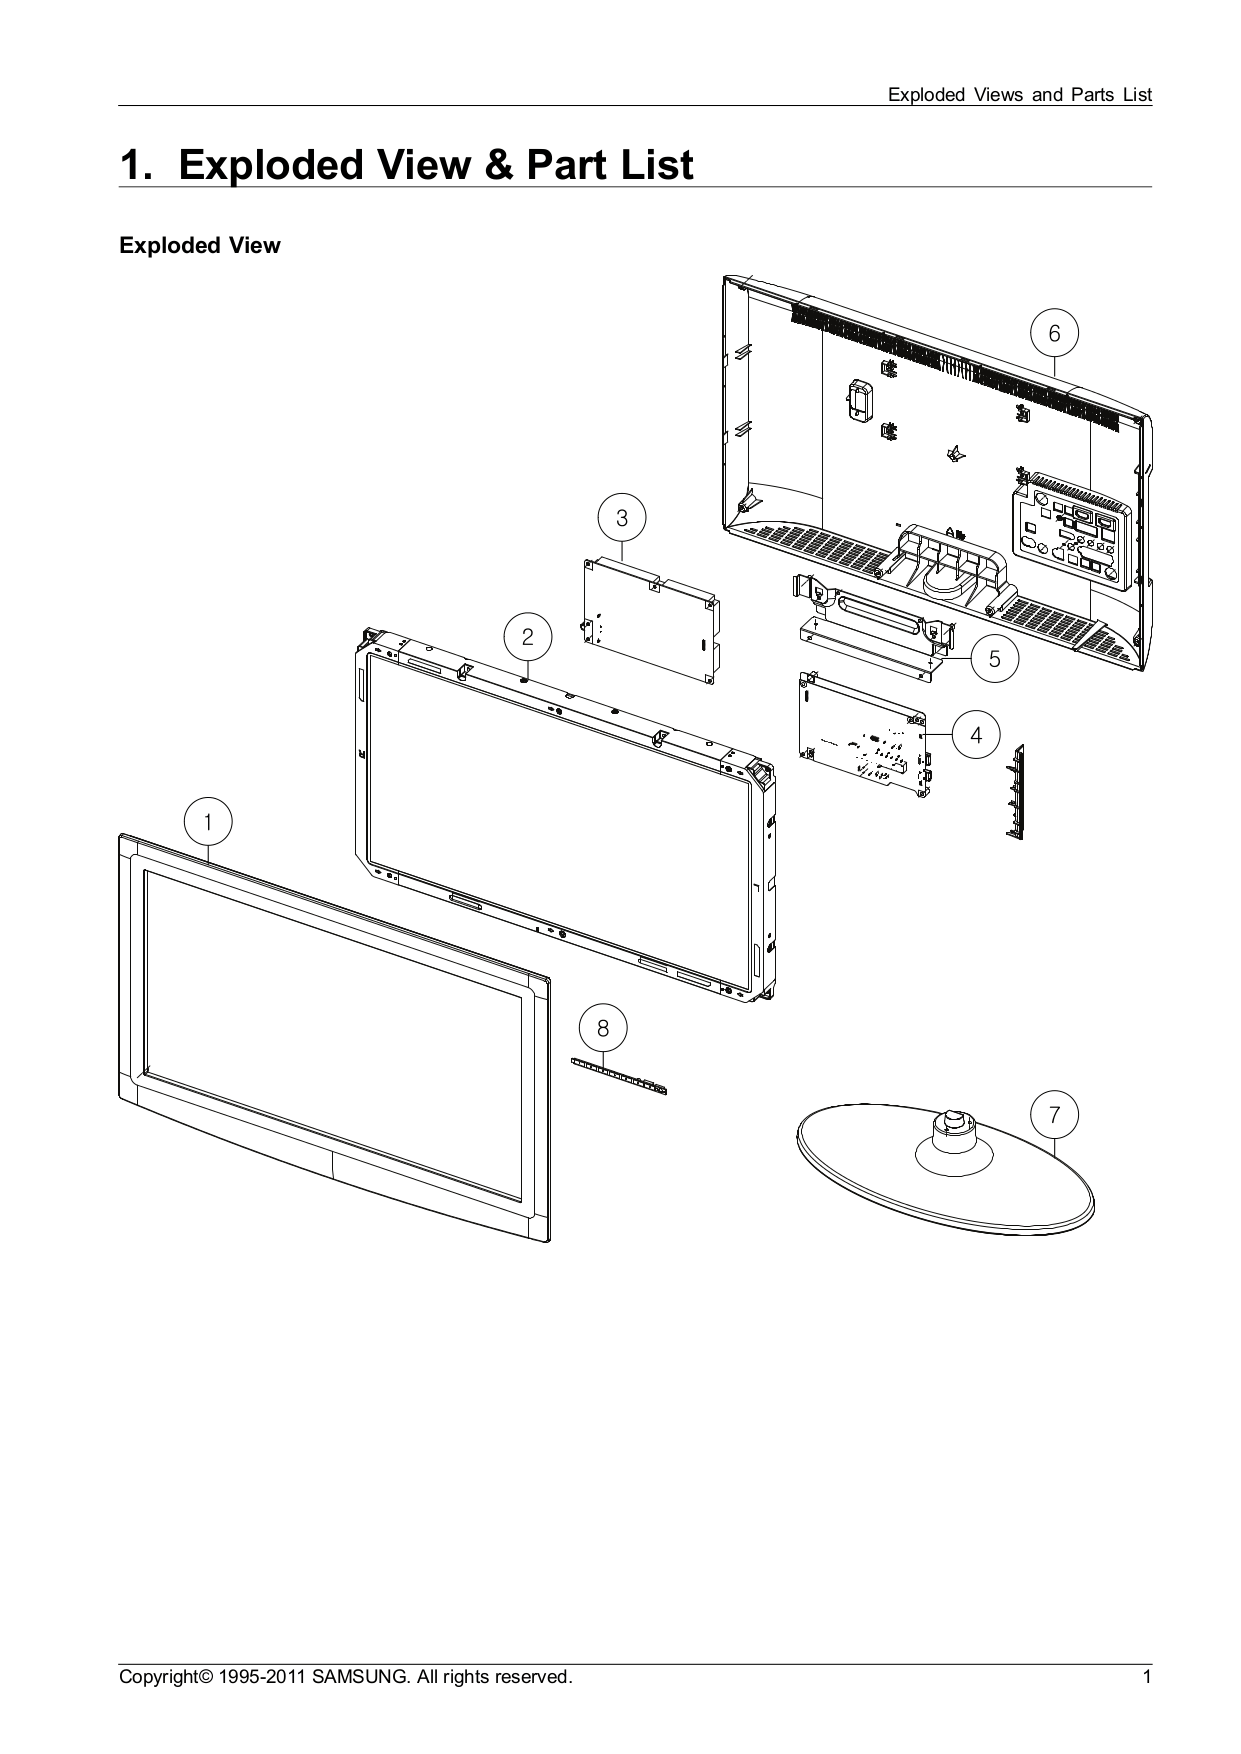 Download free pdf for Samsung LN32D550 TV manual